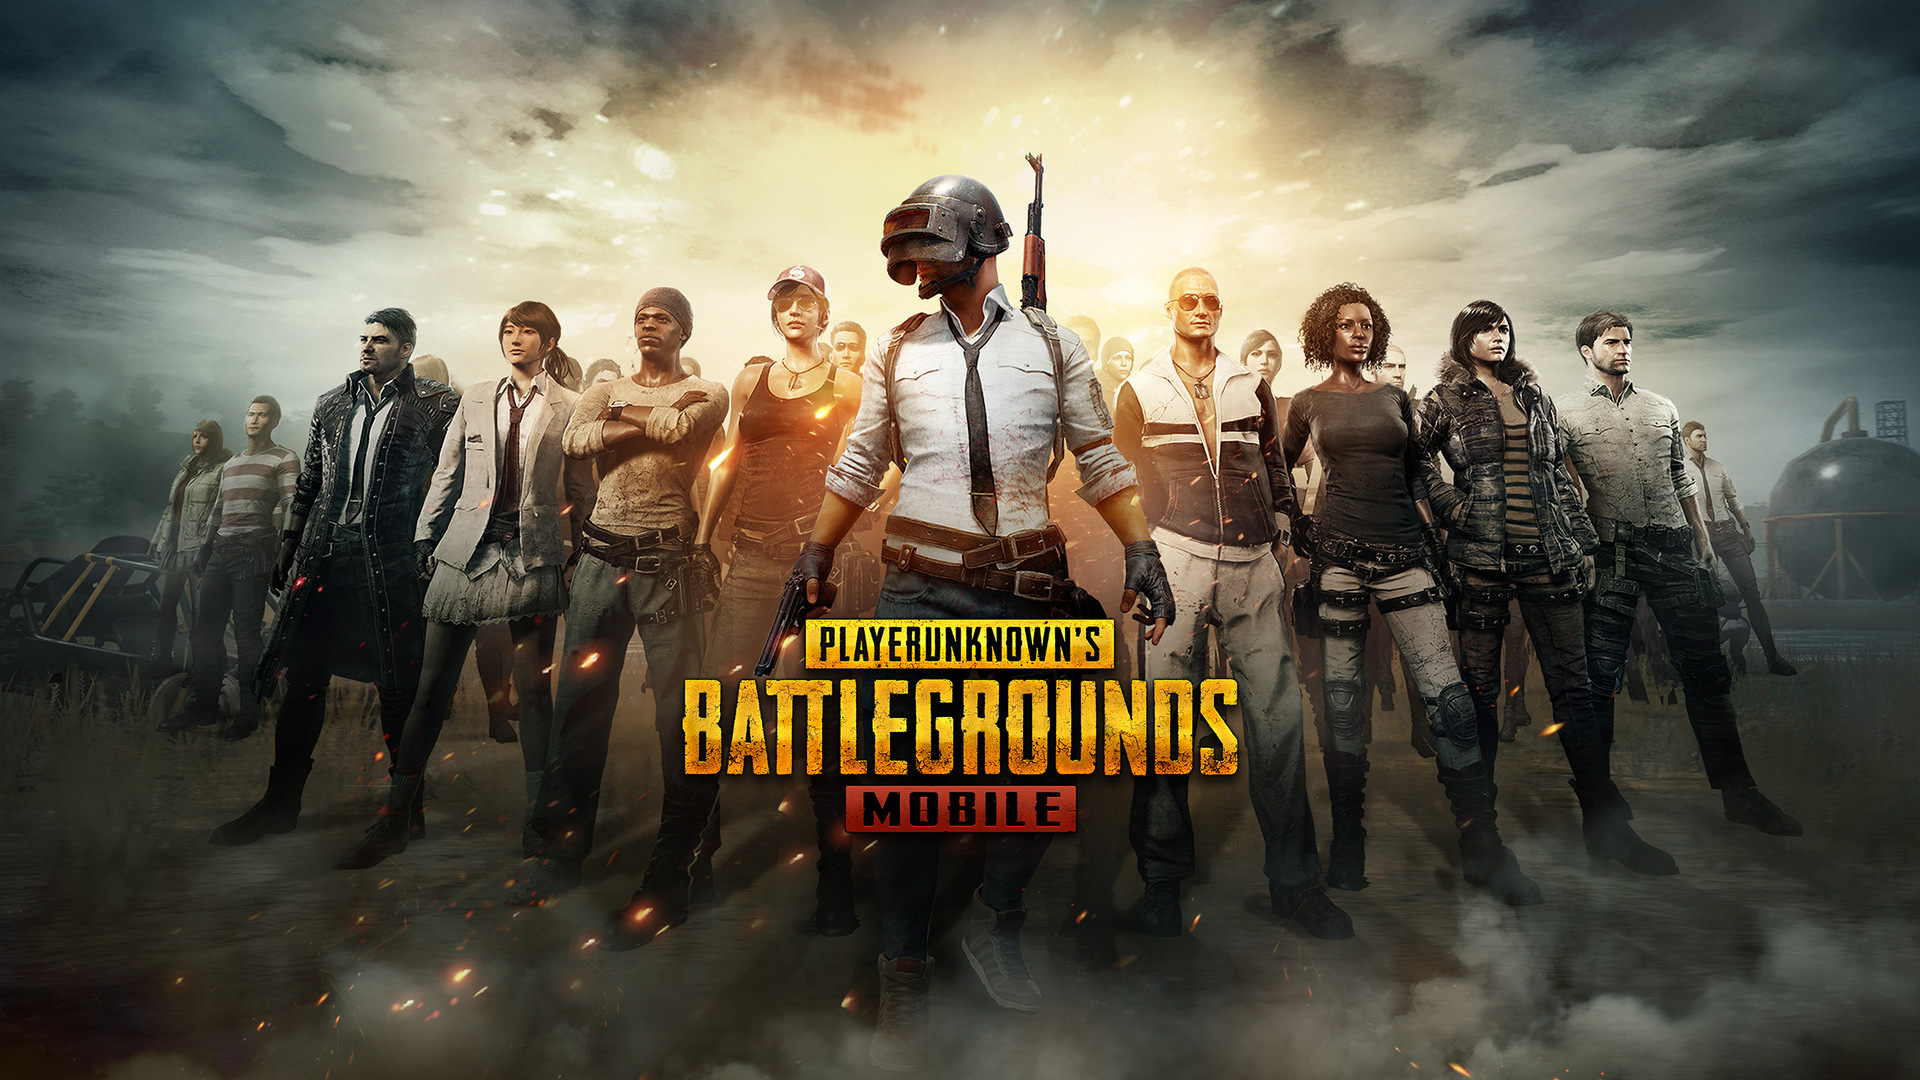 Pubg Wallpapers Hd 1080p: 1920x1080 Pubg Mobile Laptop Full HD 1080P HD 4k